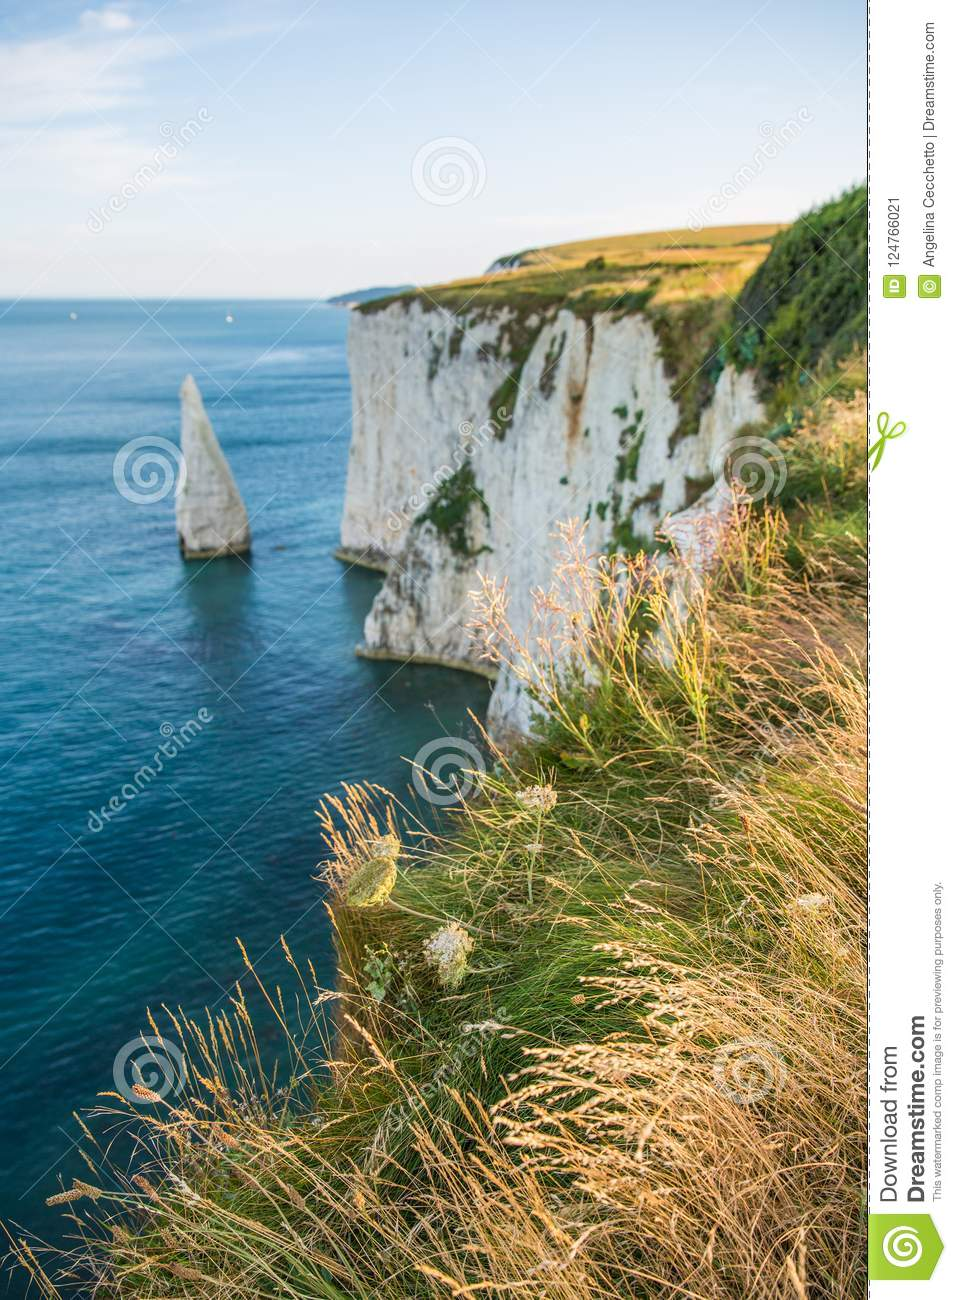 White Cliffs with Turquoise Atlantic Ocean on a Sunny Day